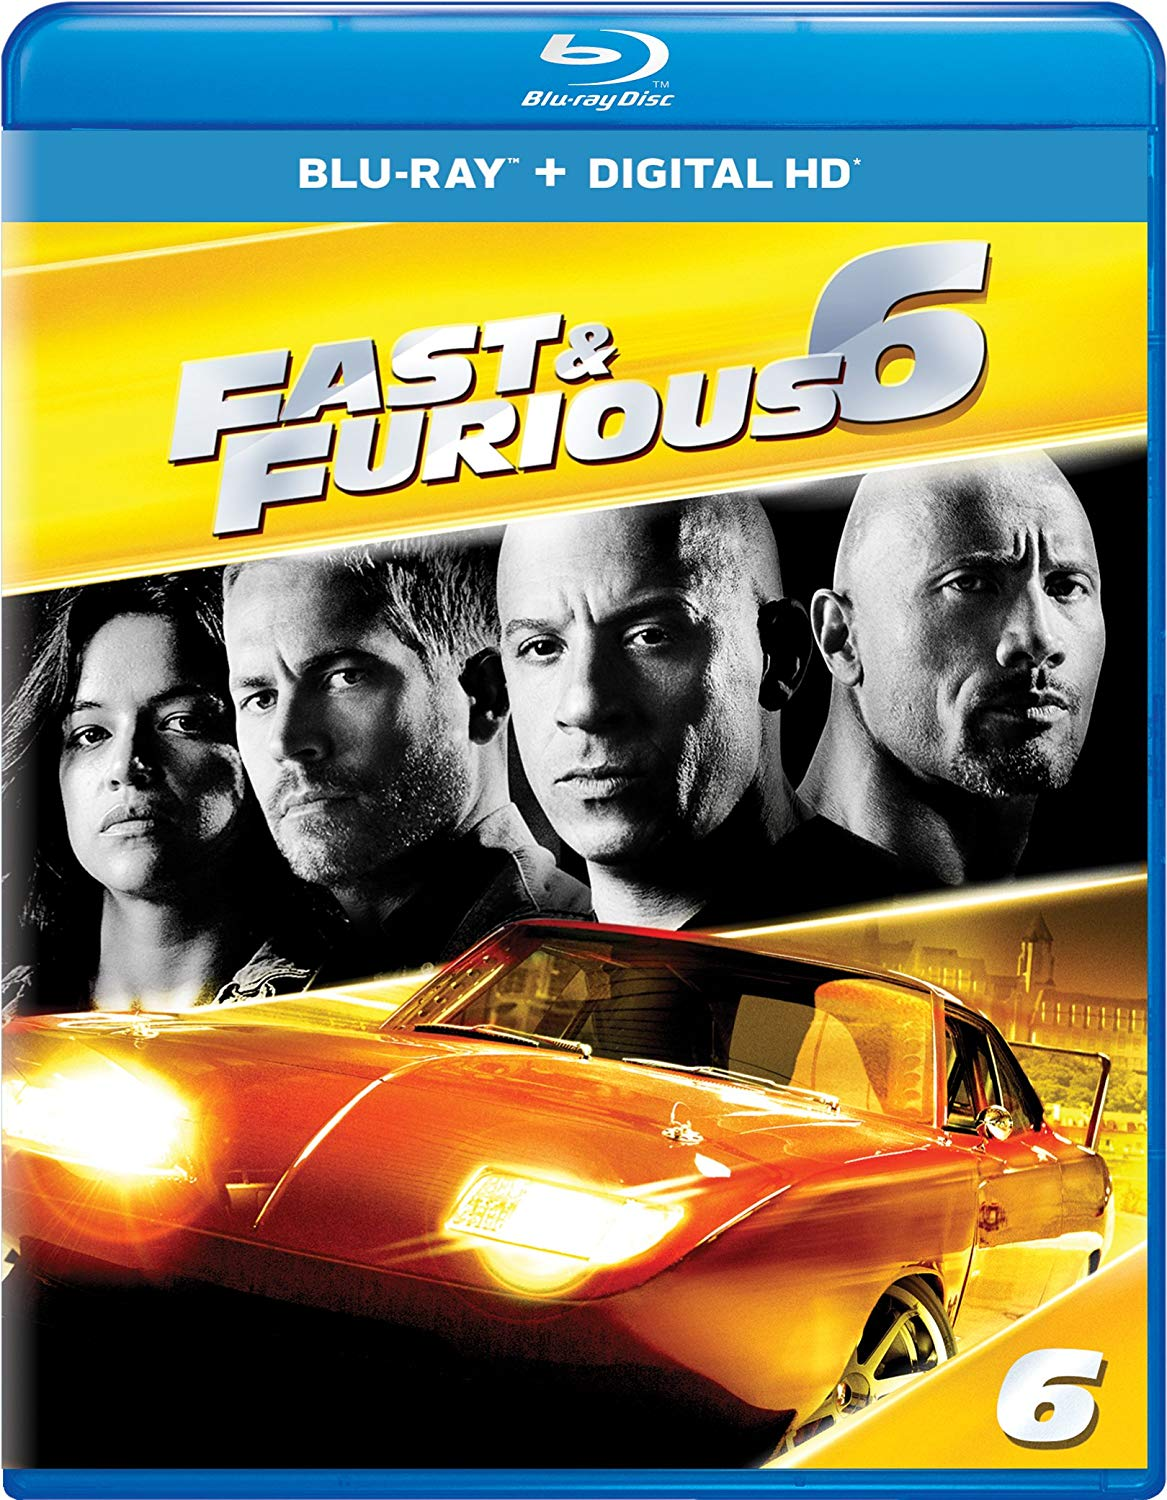 The Fast & The Furious [Movie] - Fast & Furious 6